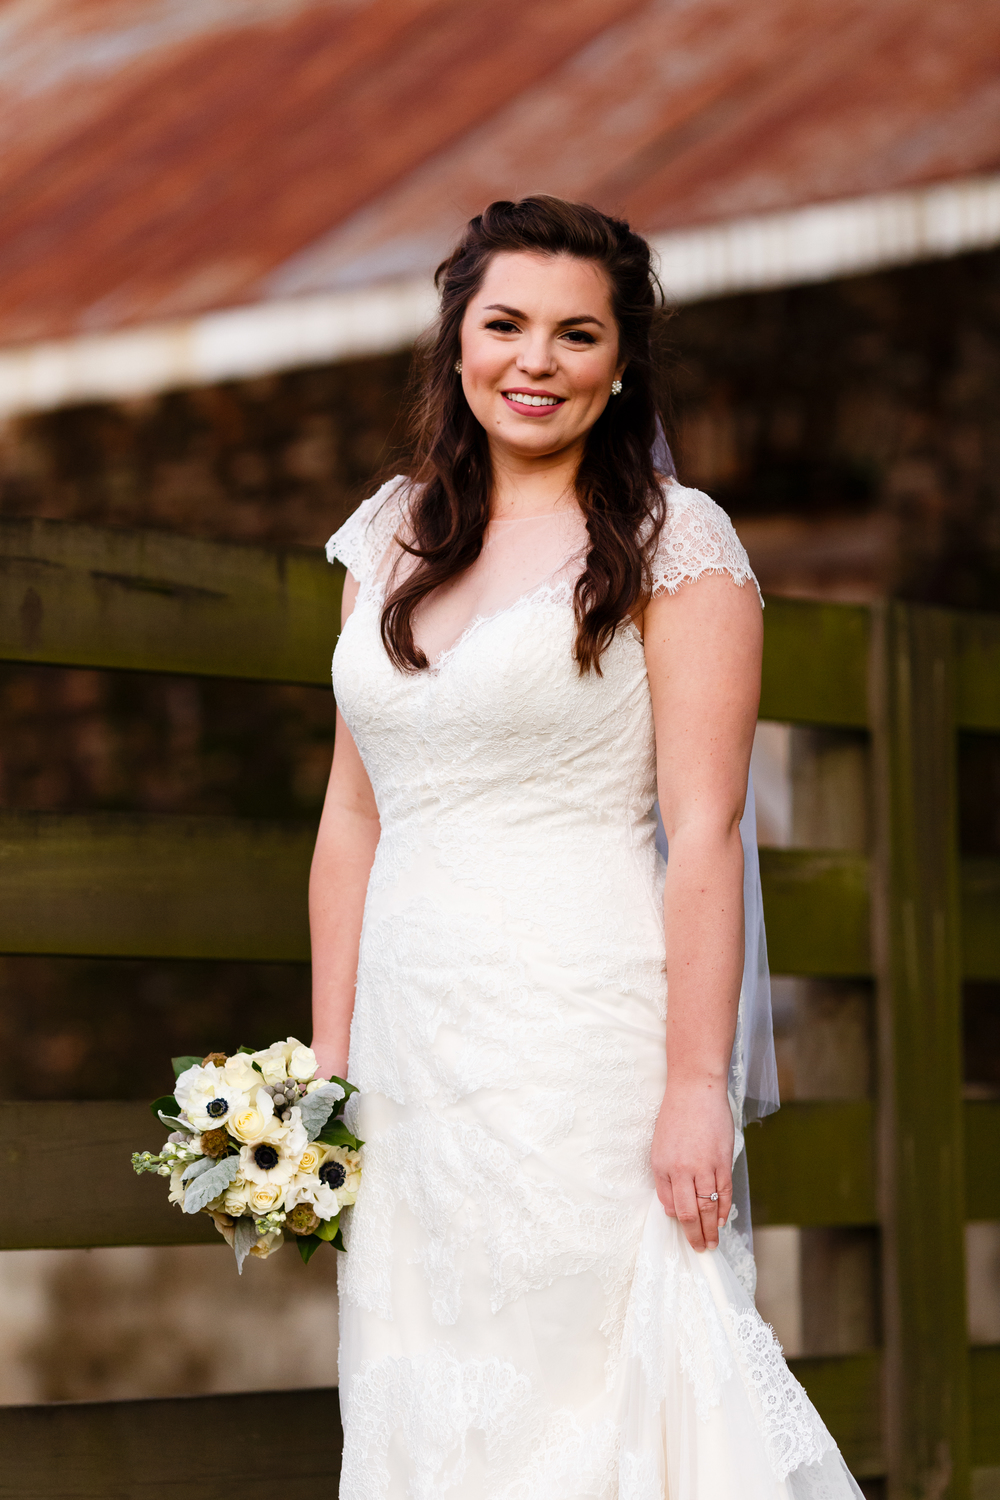 Bridal-wedding-portrait-lafayette-broussard-youngsville-photographer-11.jpg